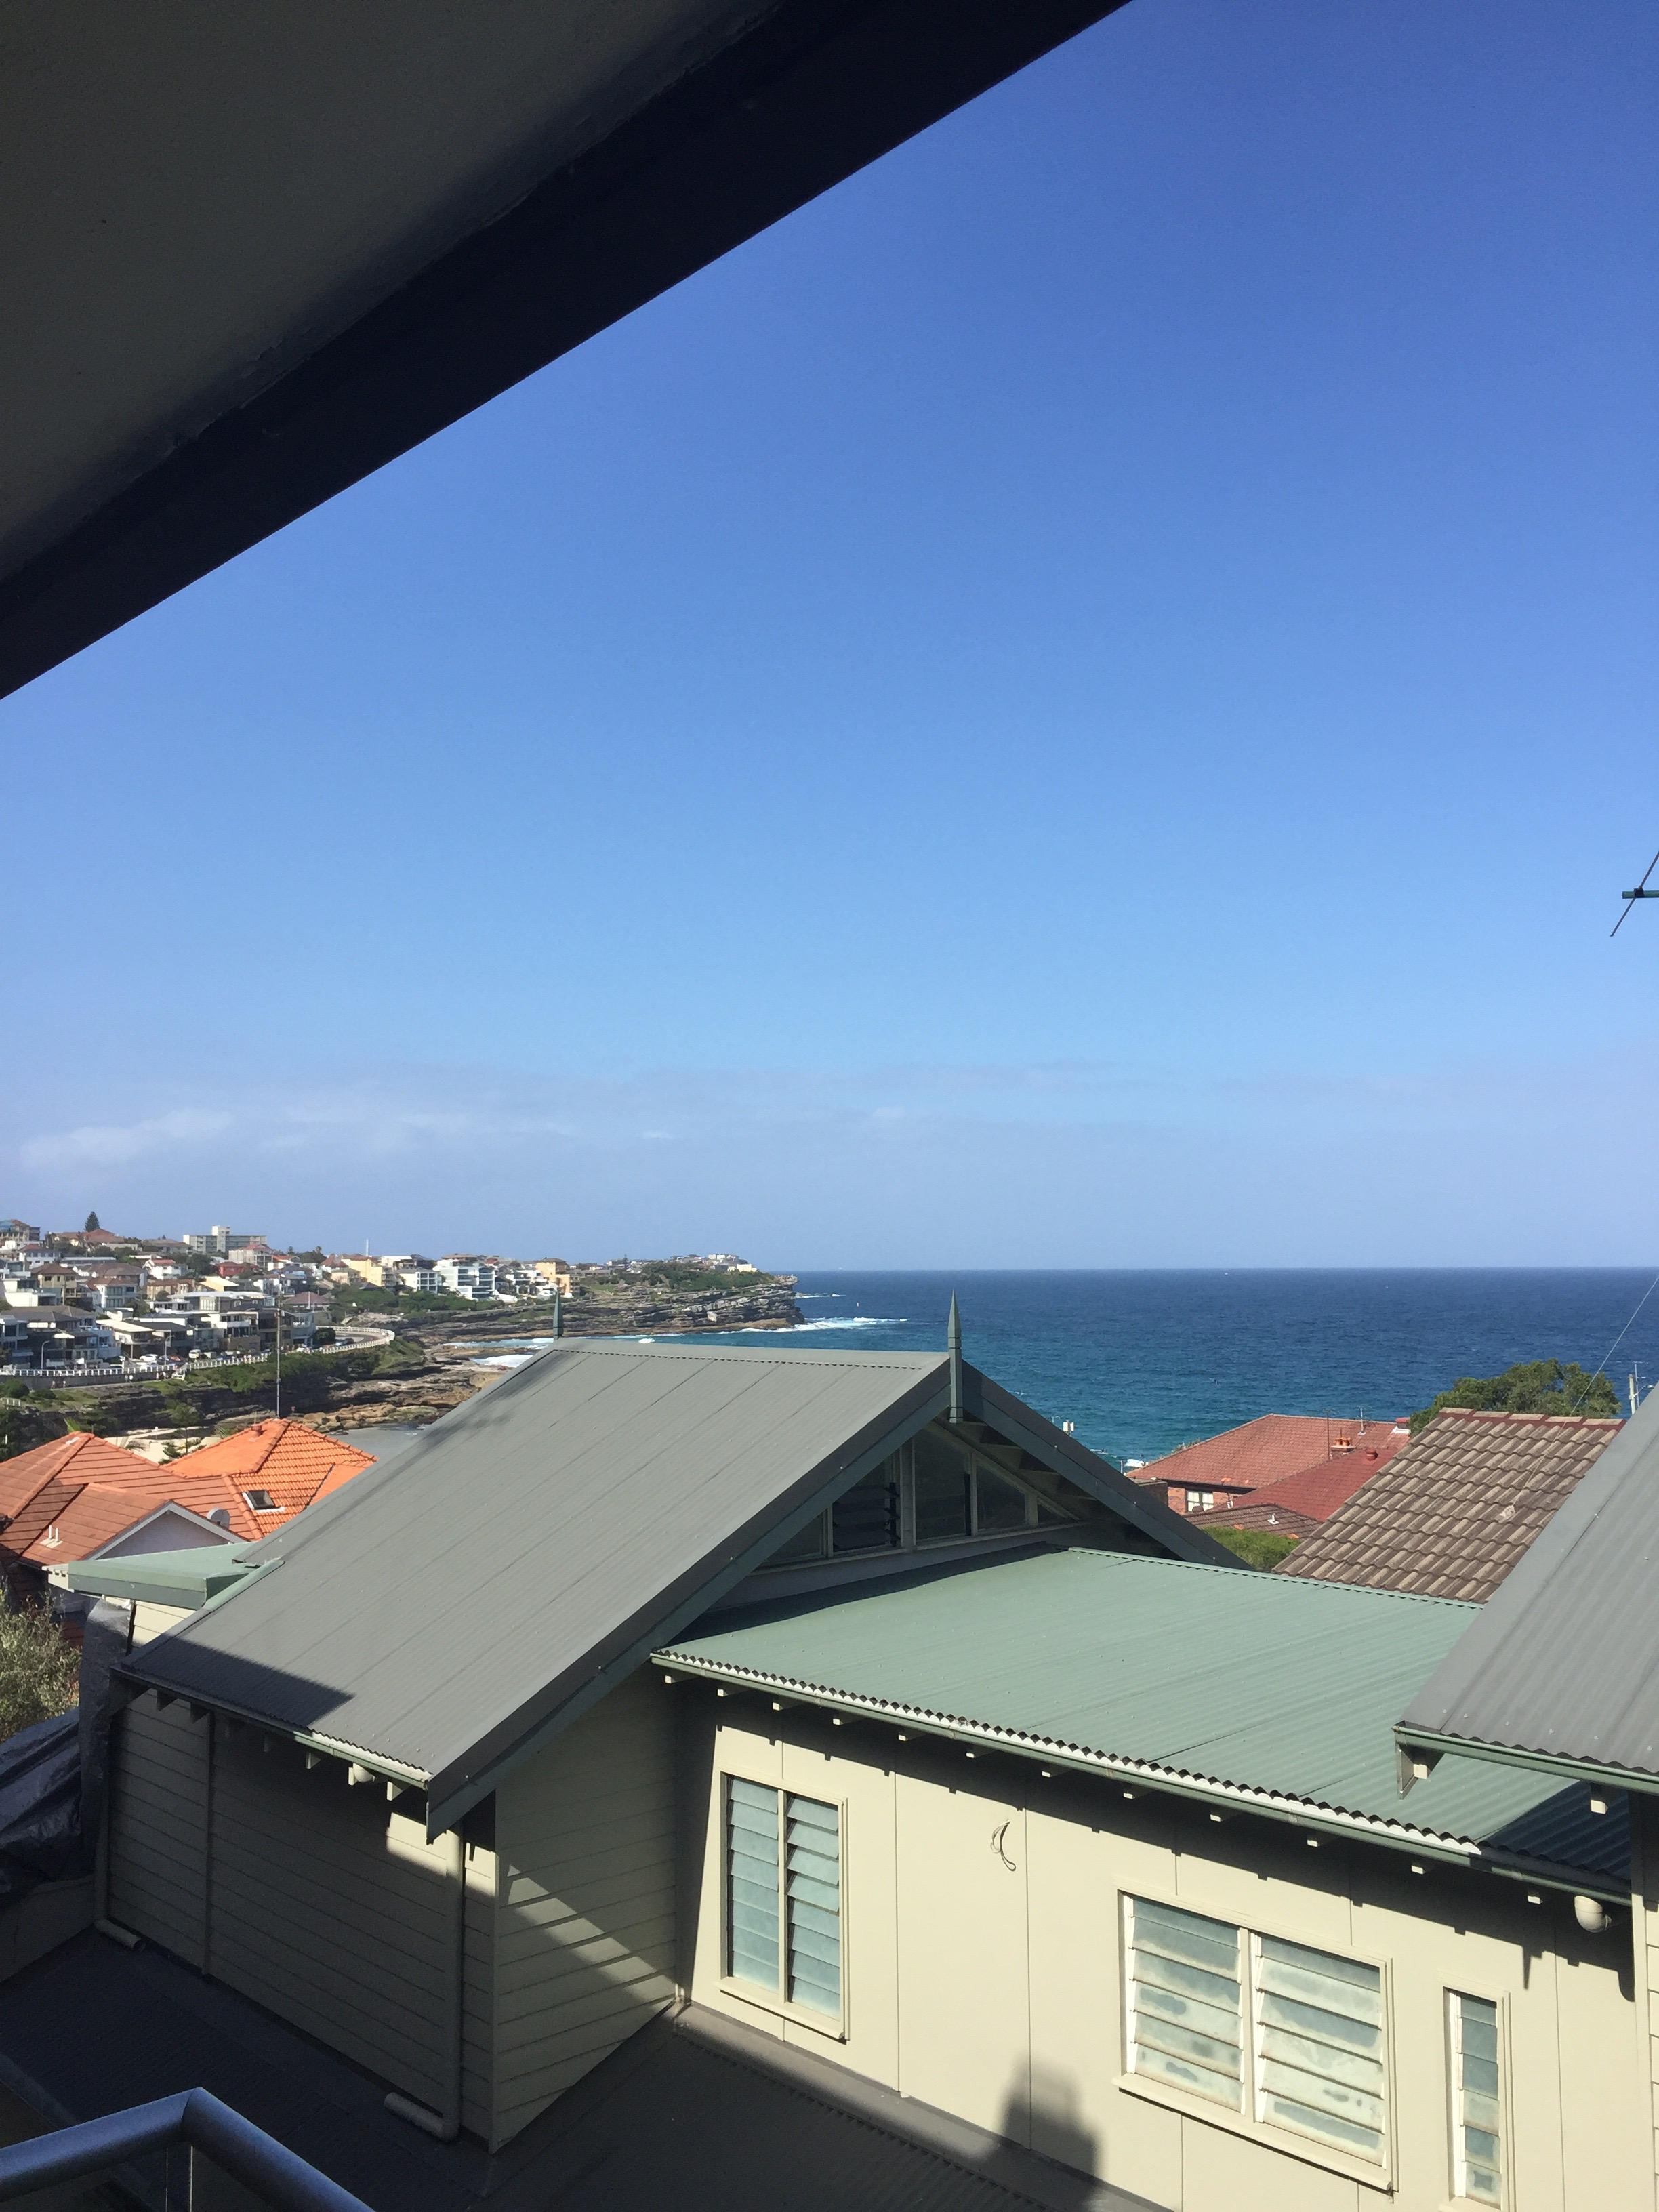 slightly obstructed view of the ocean and Bronte Beach from the balcony of my Airbnb rental